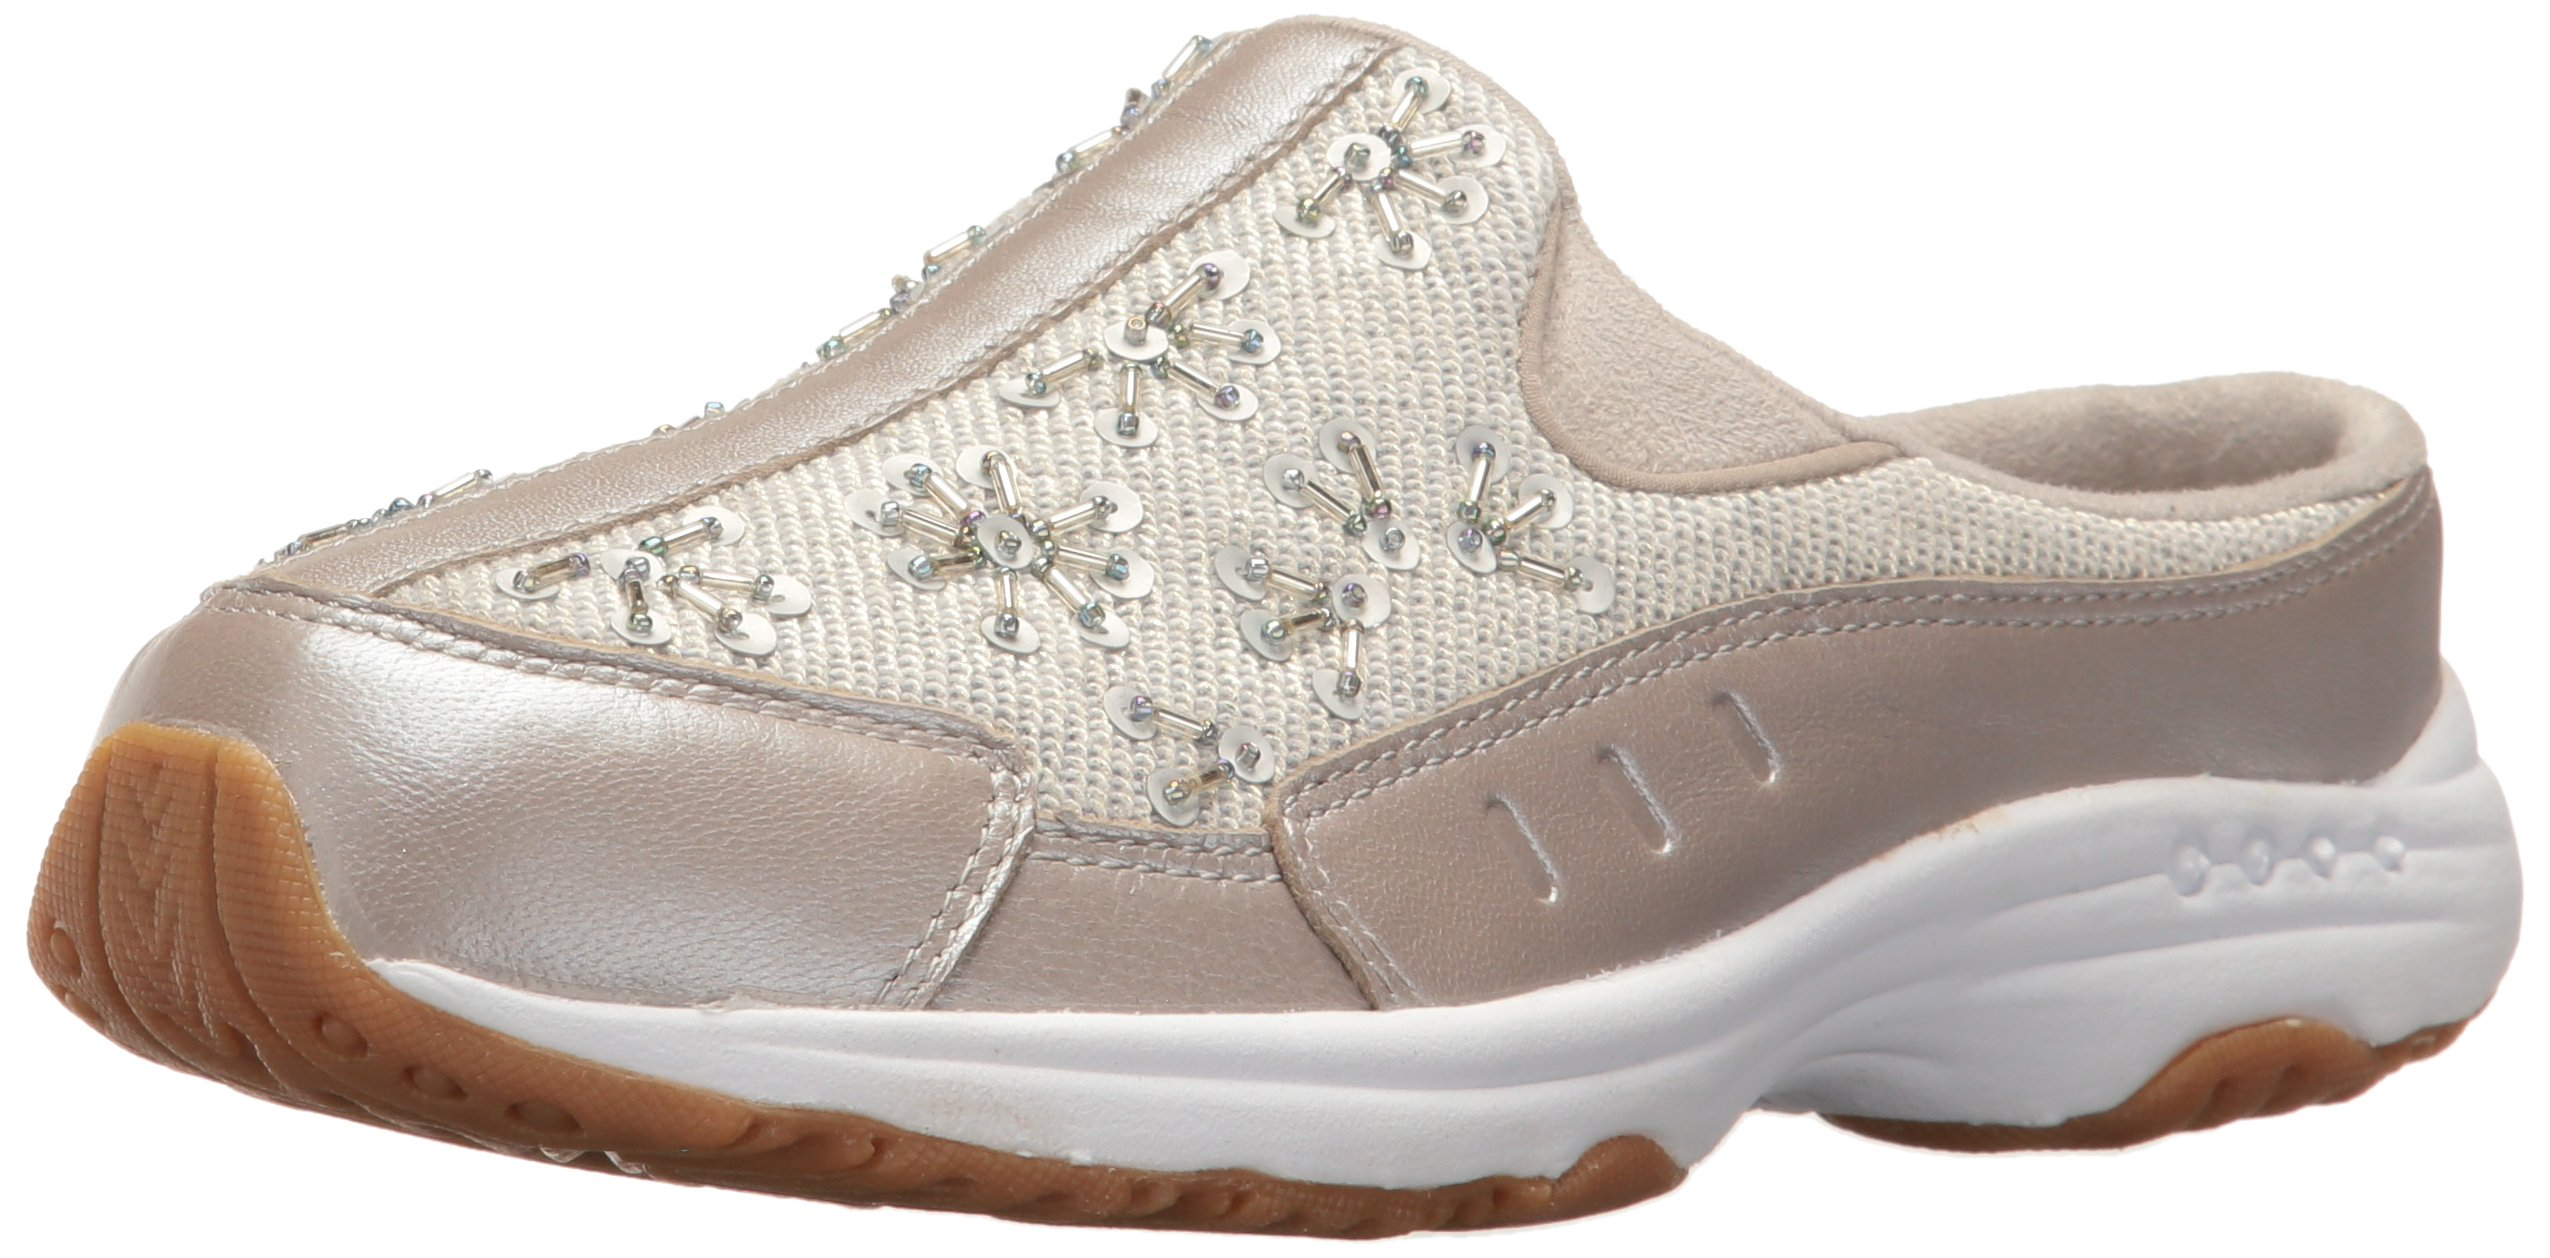 Easy Spirit Women's Traveljewel Mule, Silver/Light Gold Leather, 10 W US by Easy Spirit